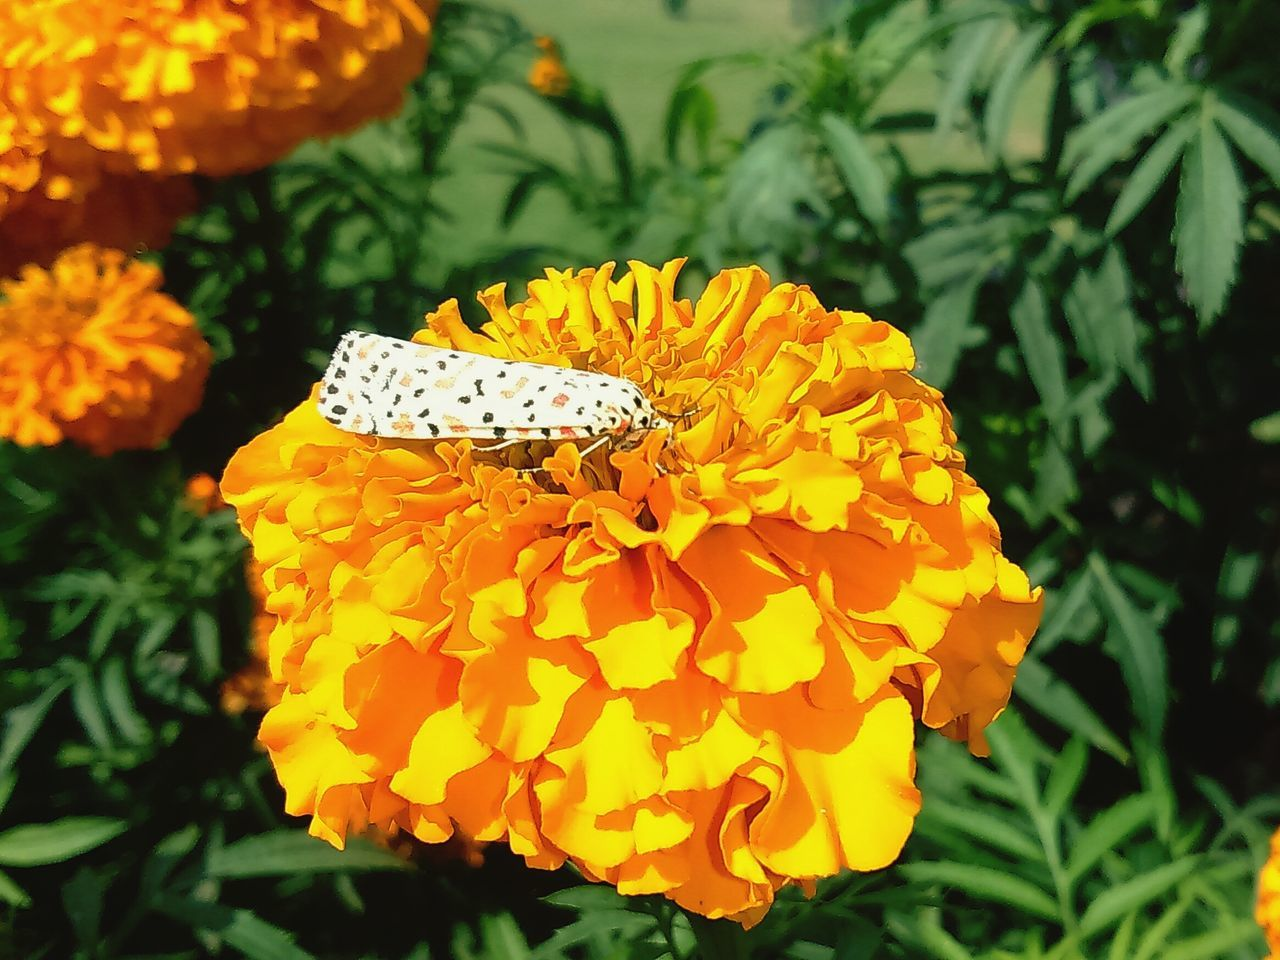 flower, petal, one animal, animal themes, insect, plant, freshness, growth, fragility, nature, animals in the wild, beauty in nature, outdoors, flower head, yellow, day, animal wildlife, no people, butterfly - insect, close-up, blooming, pollination